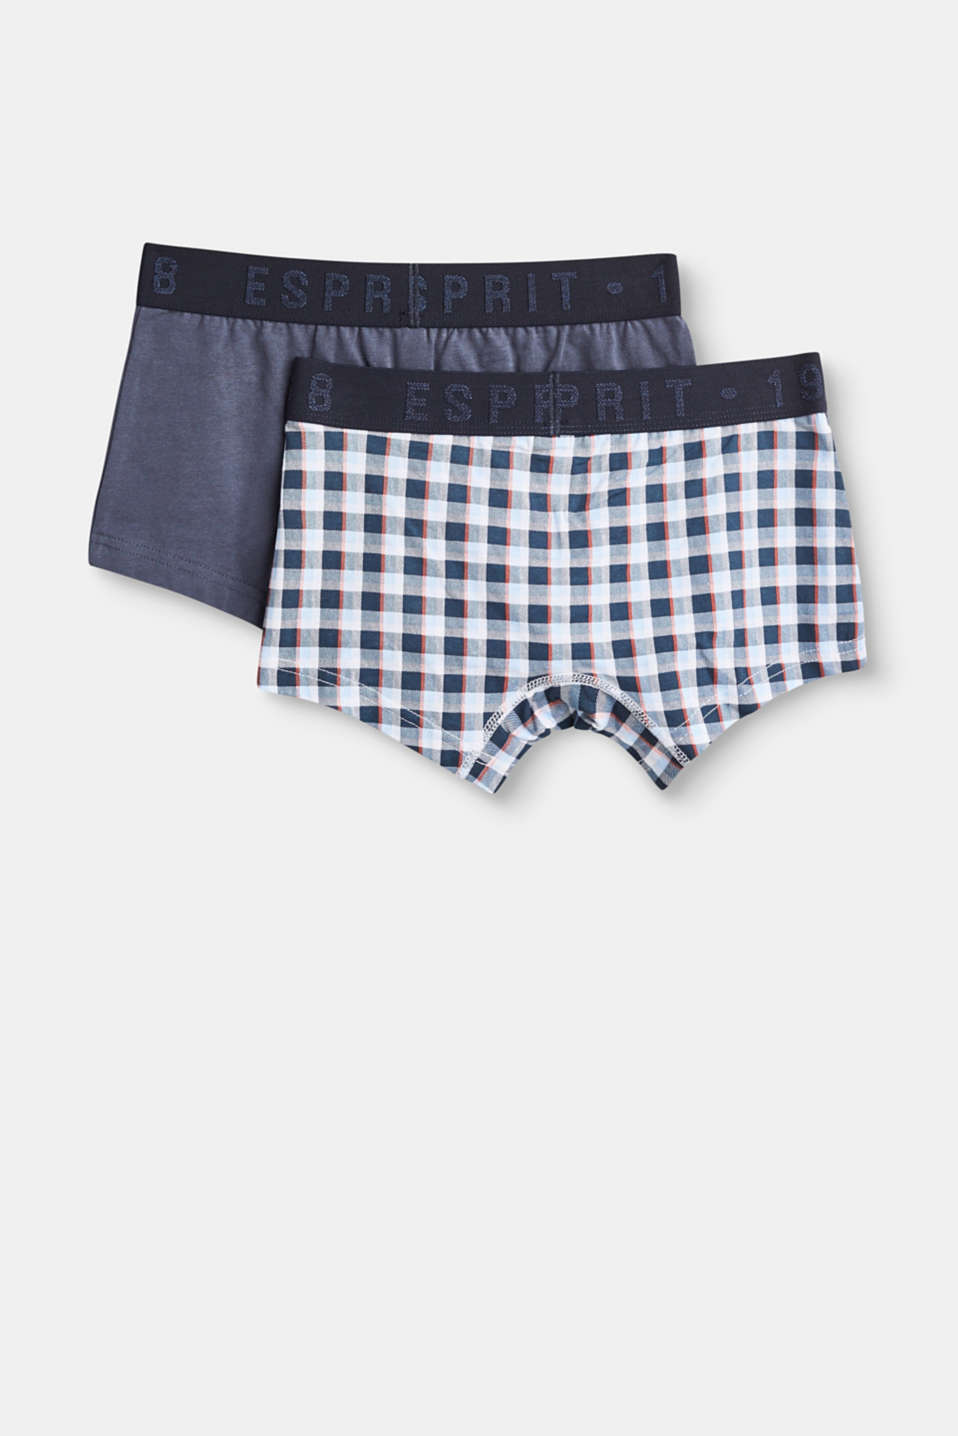 Shorts in a double pack, stretch cotton